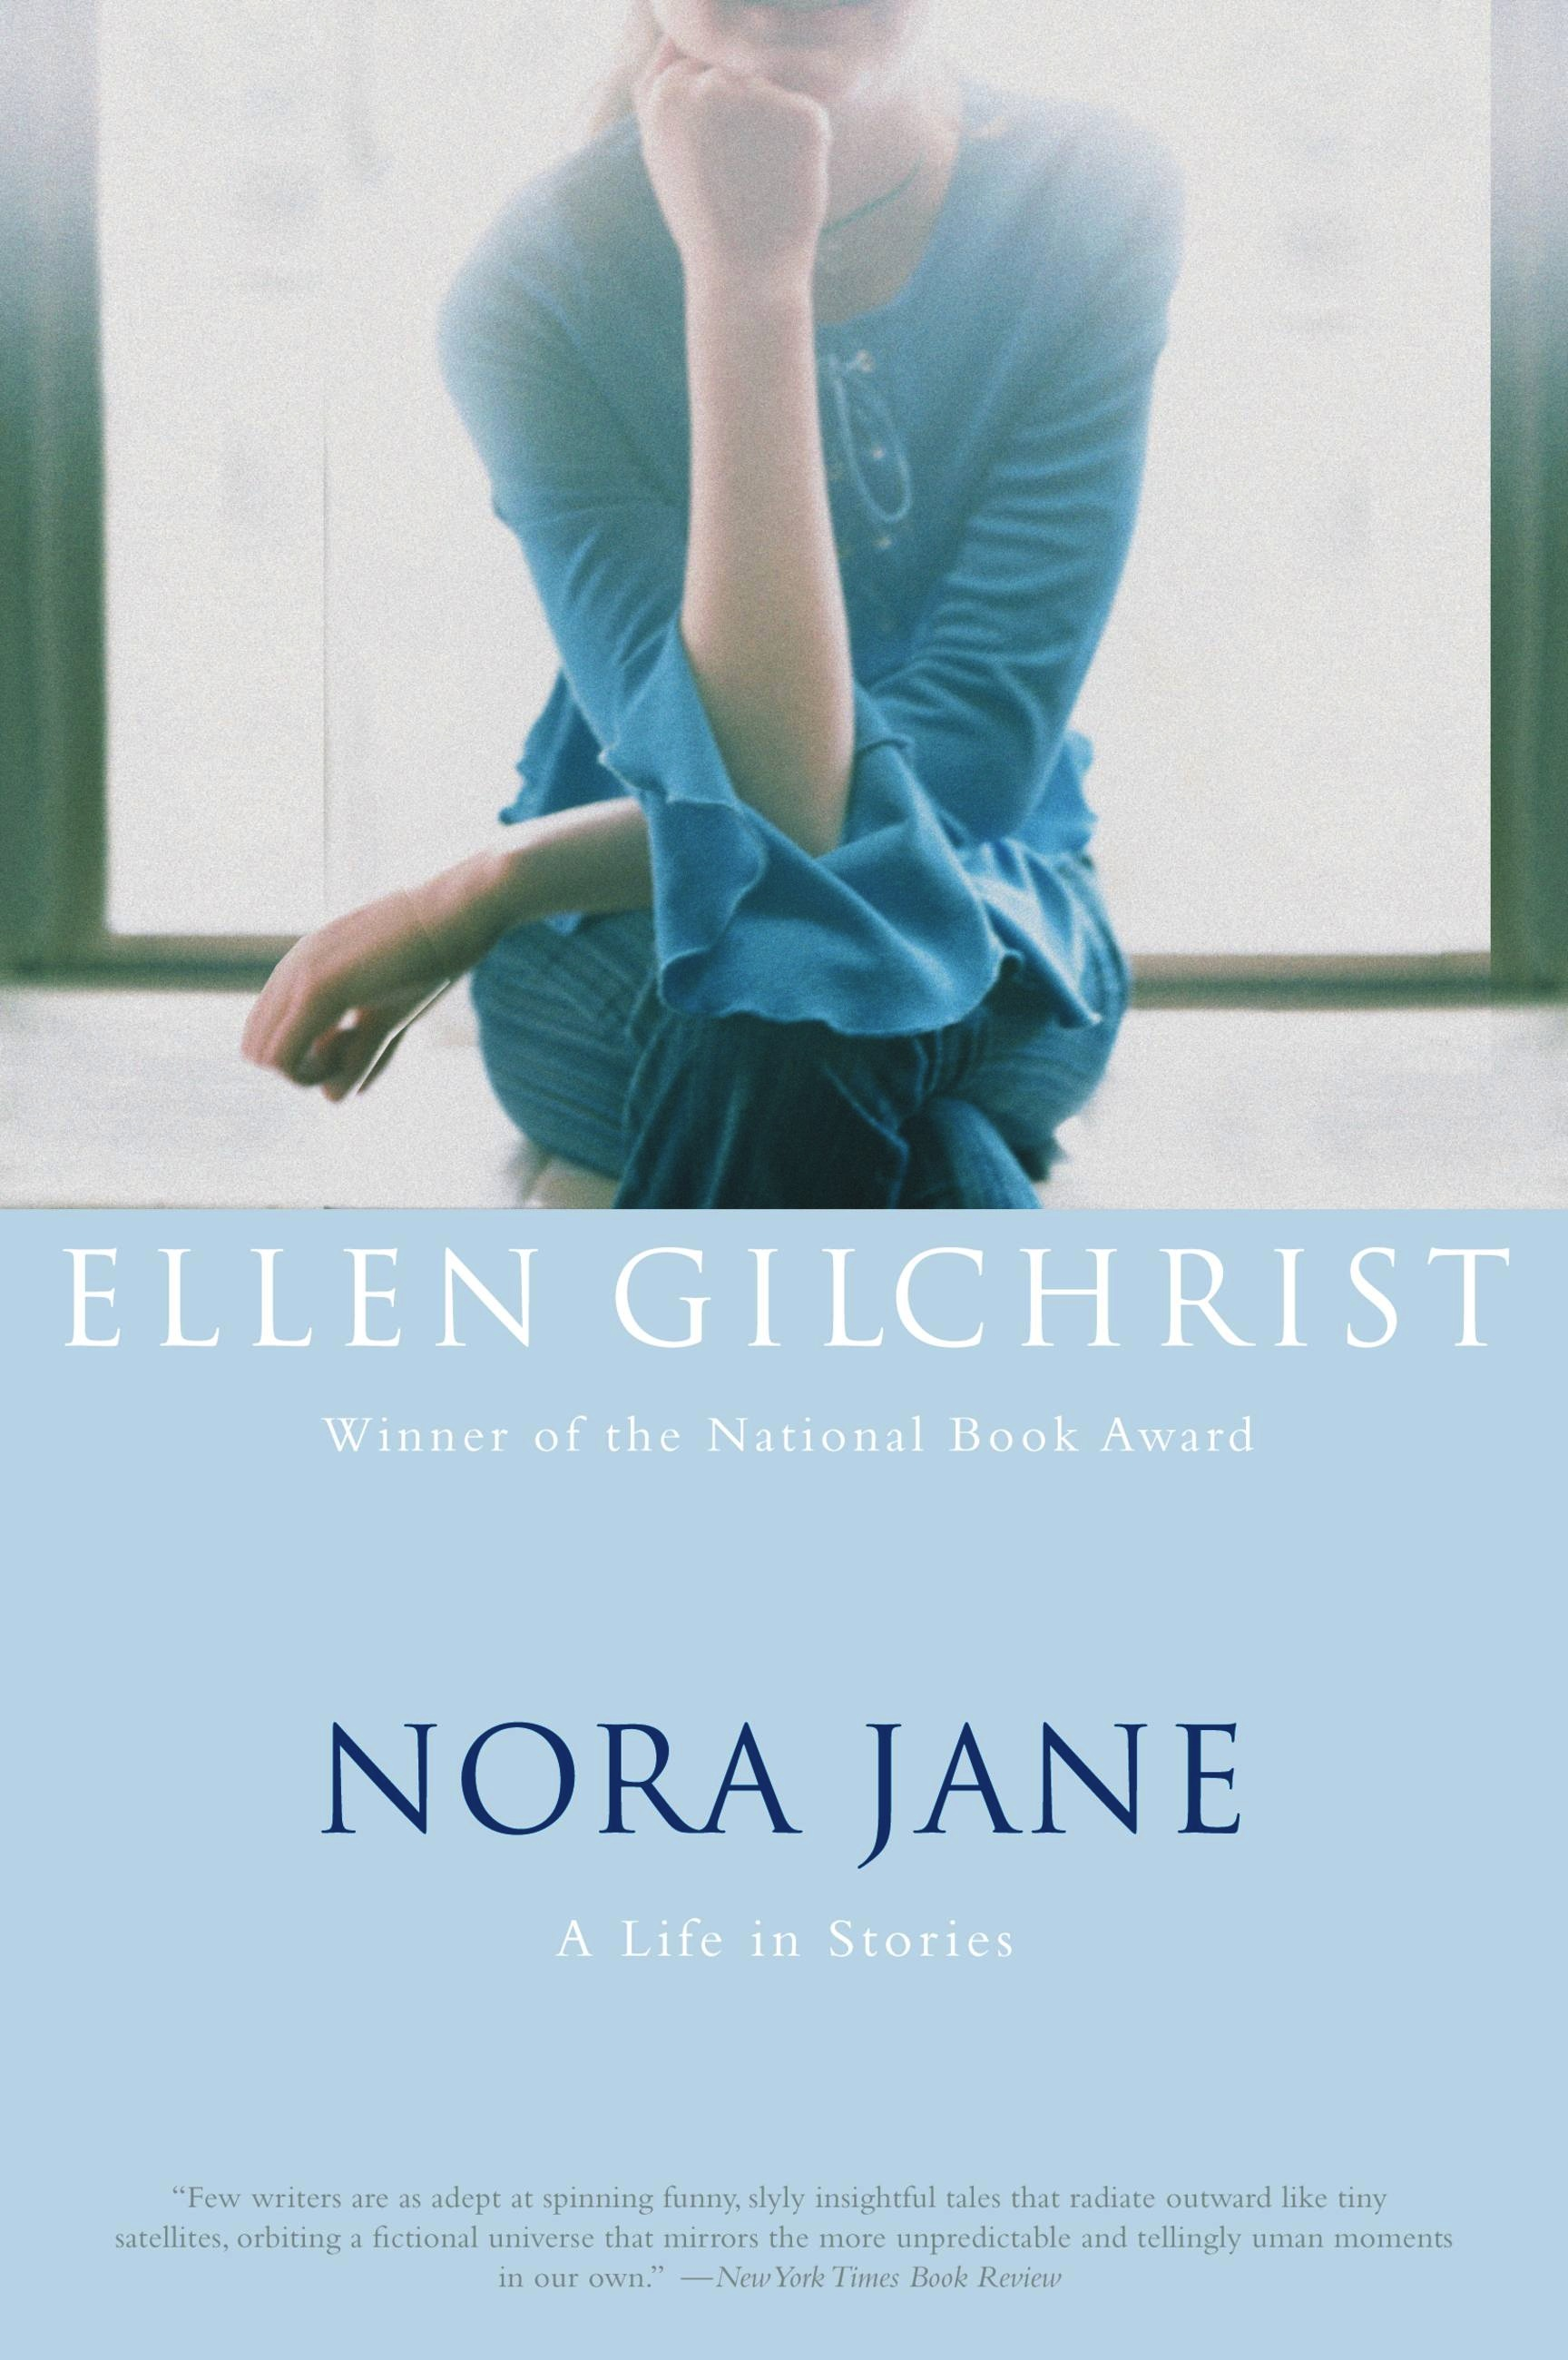 Nora Jane: A Life in Stories